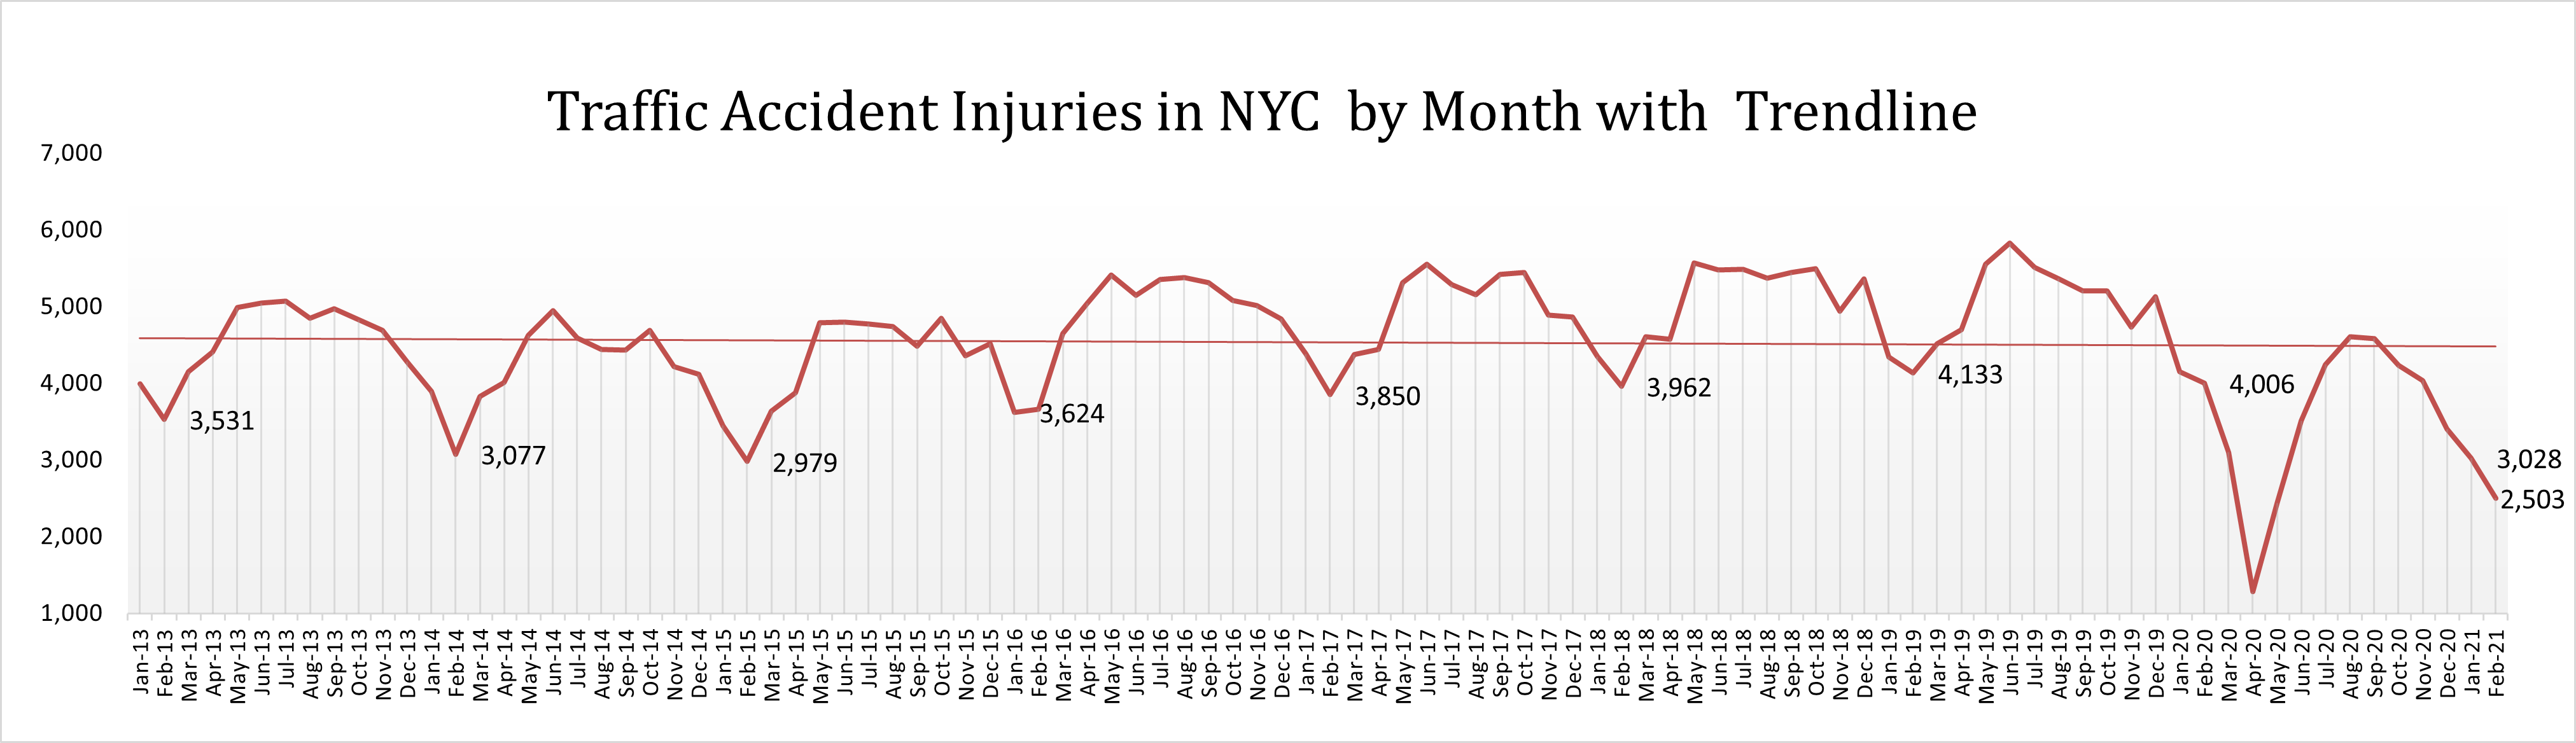 Traffic Accident Injuries NYC February 2021